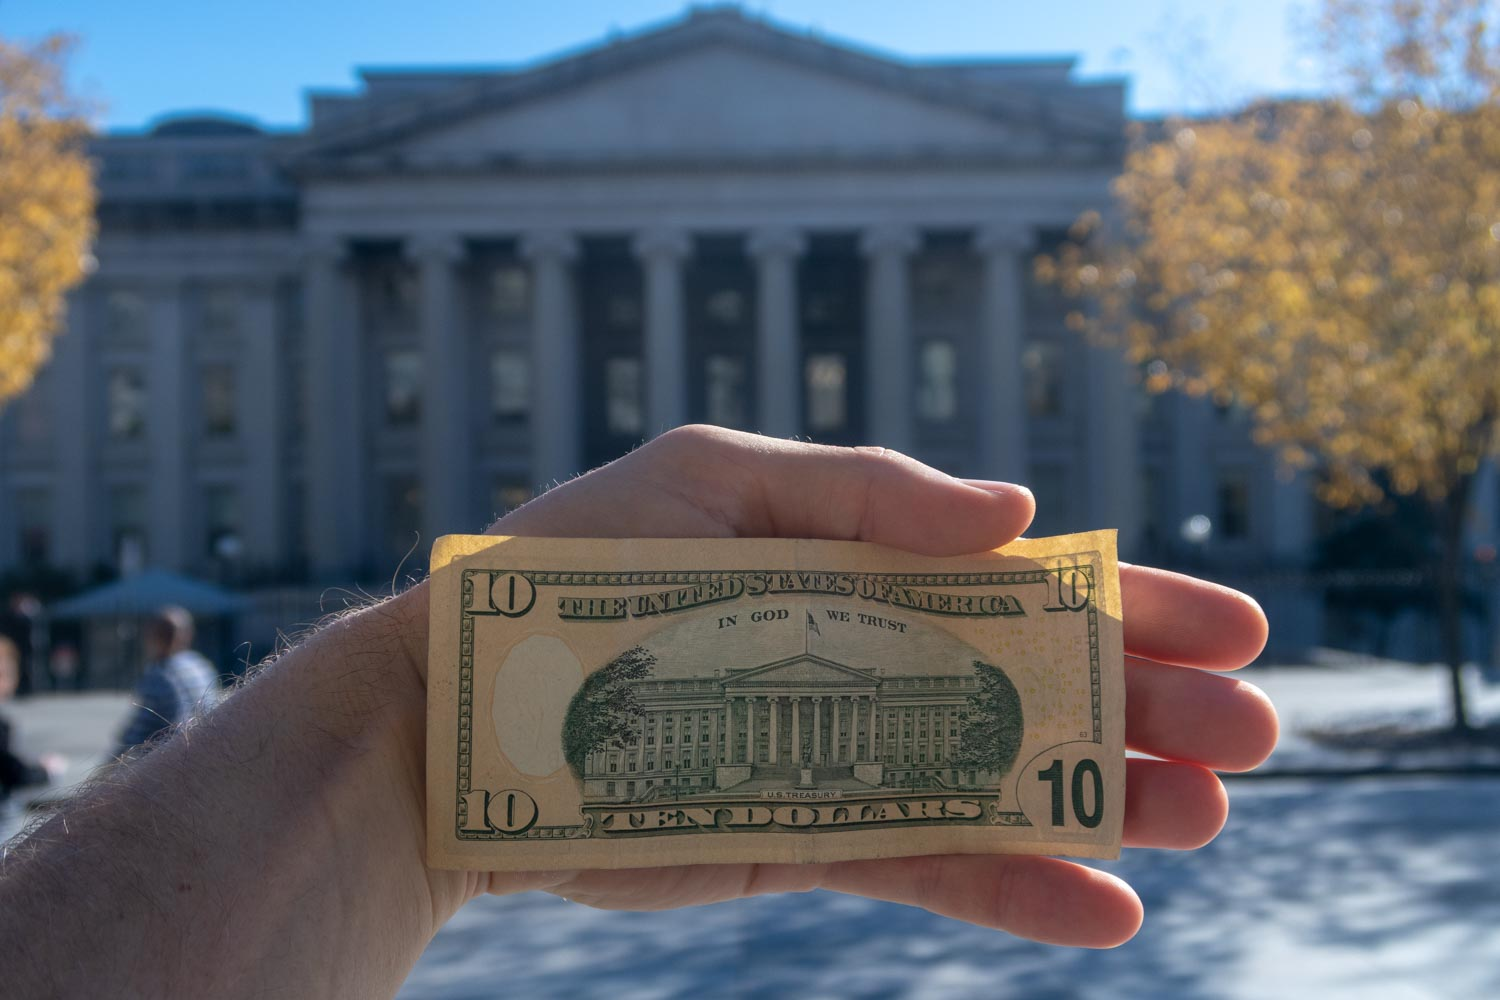 Comparing 10 dollar bill to the national treasury in D.C.